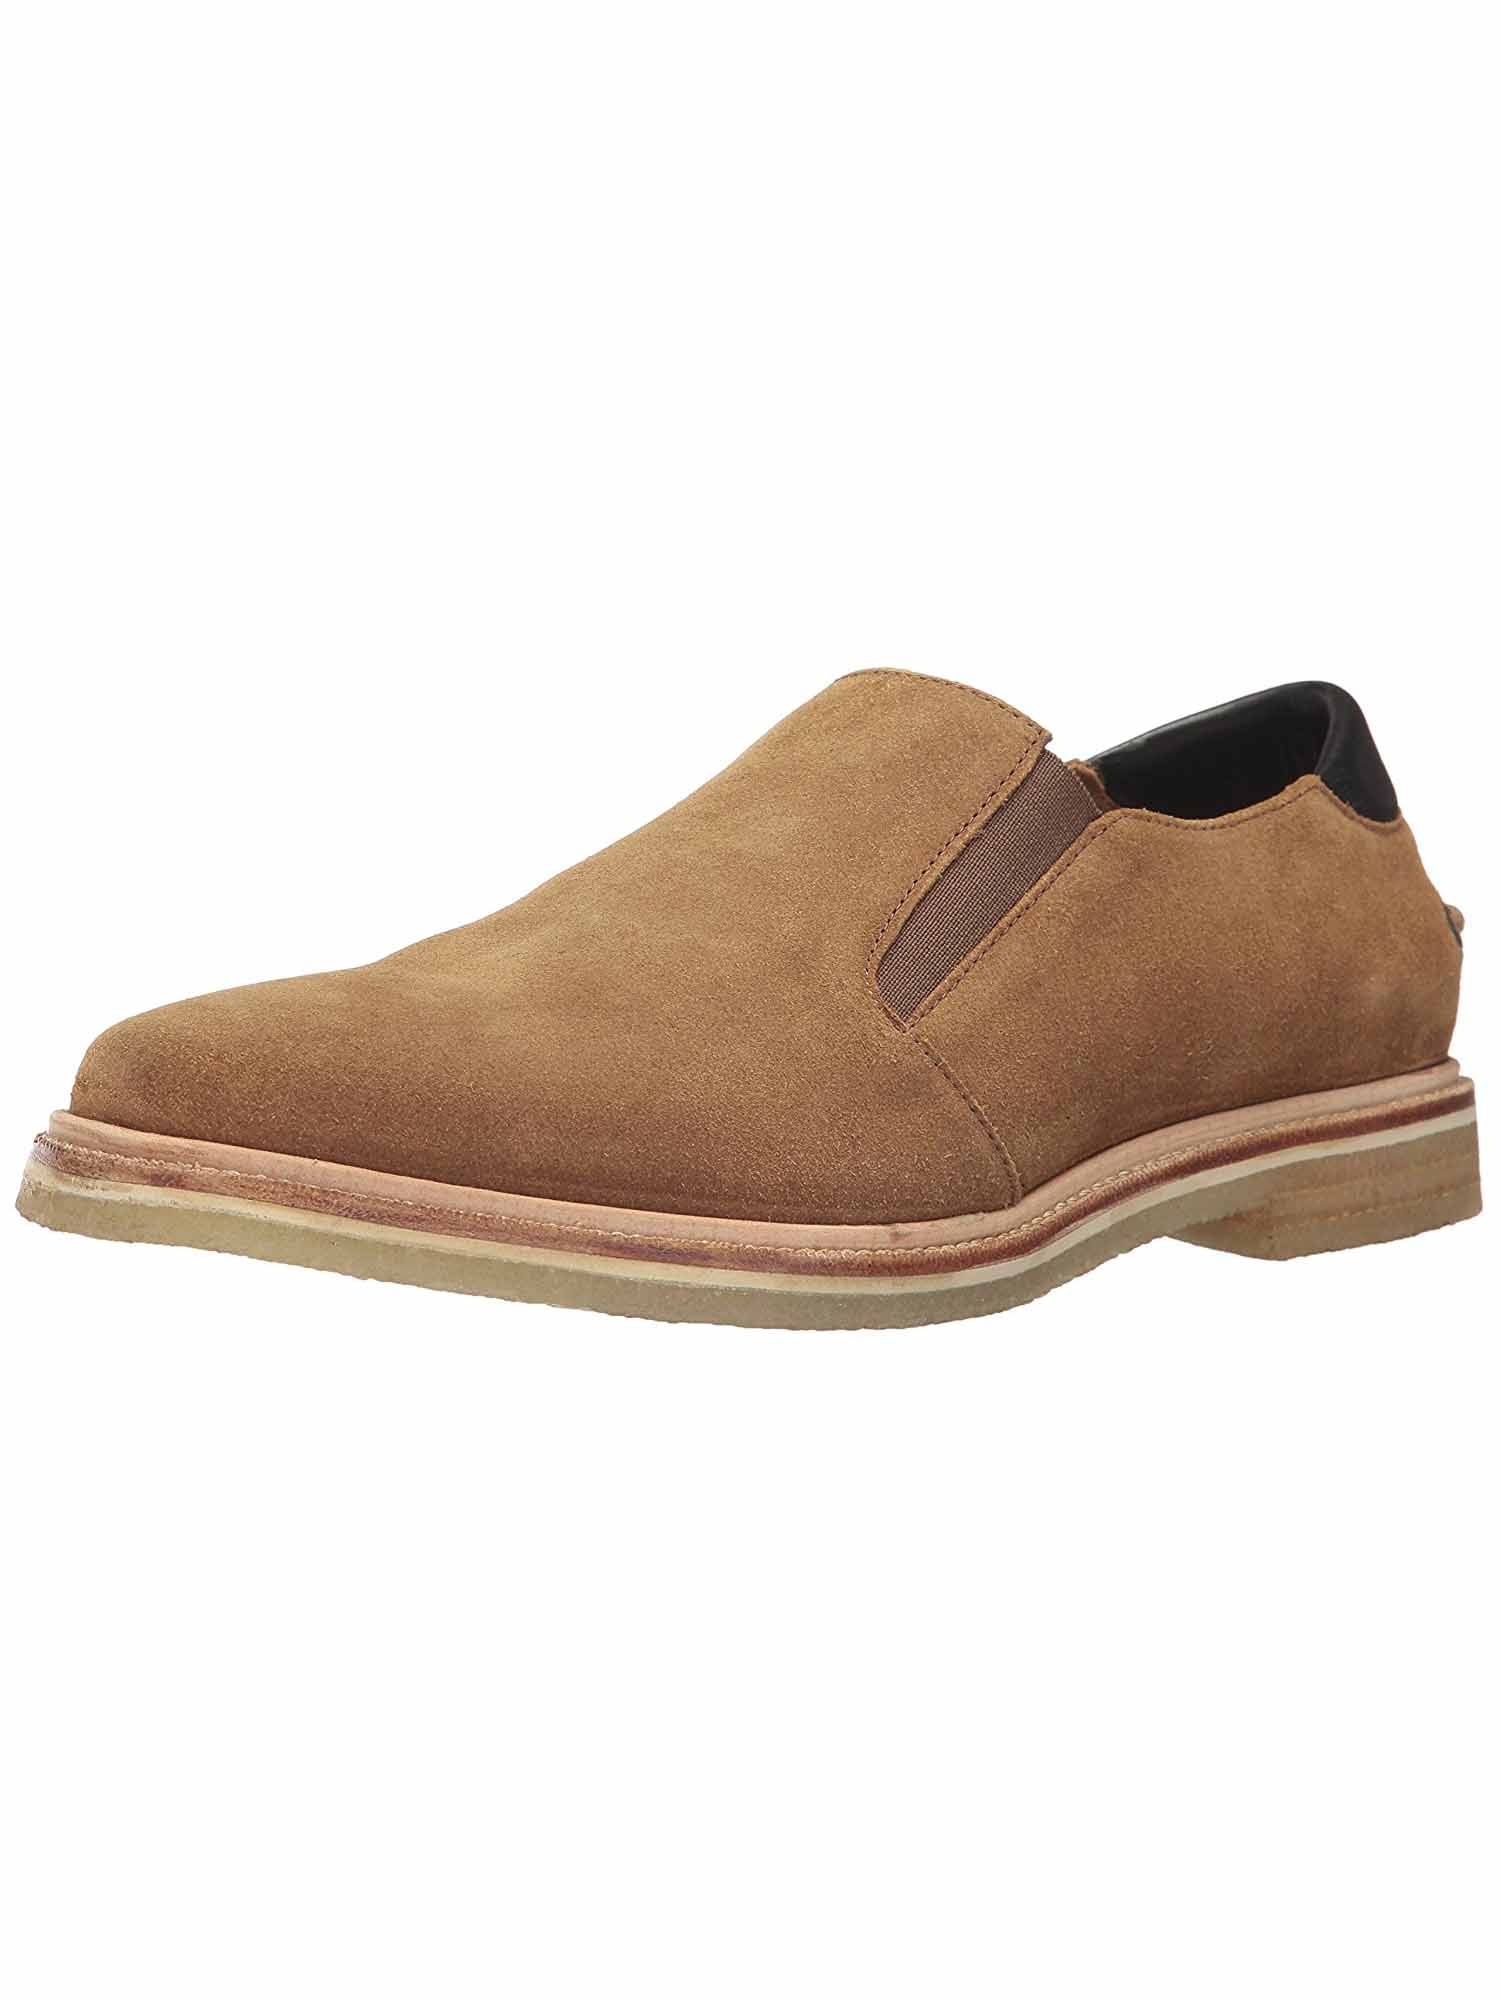 Tommy Bahama Mens Linen Leather Slip-On Loafer (Tabacco, 9) by